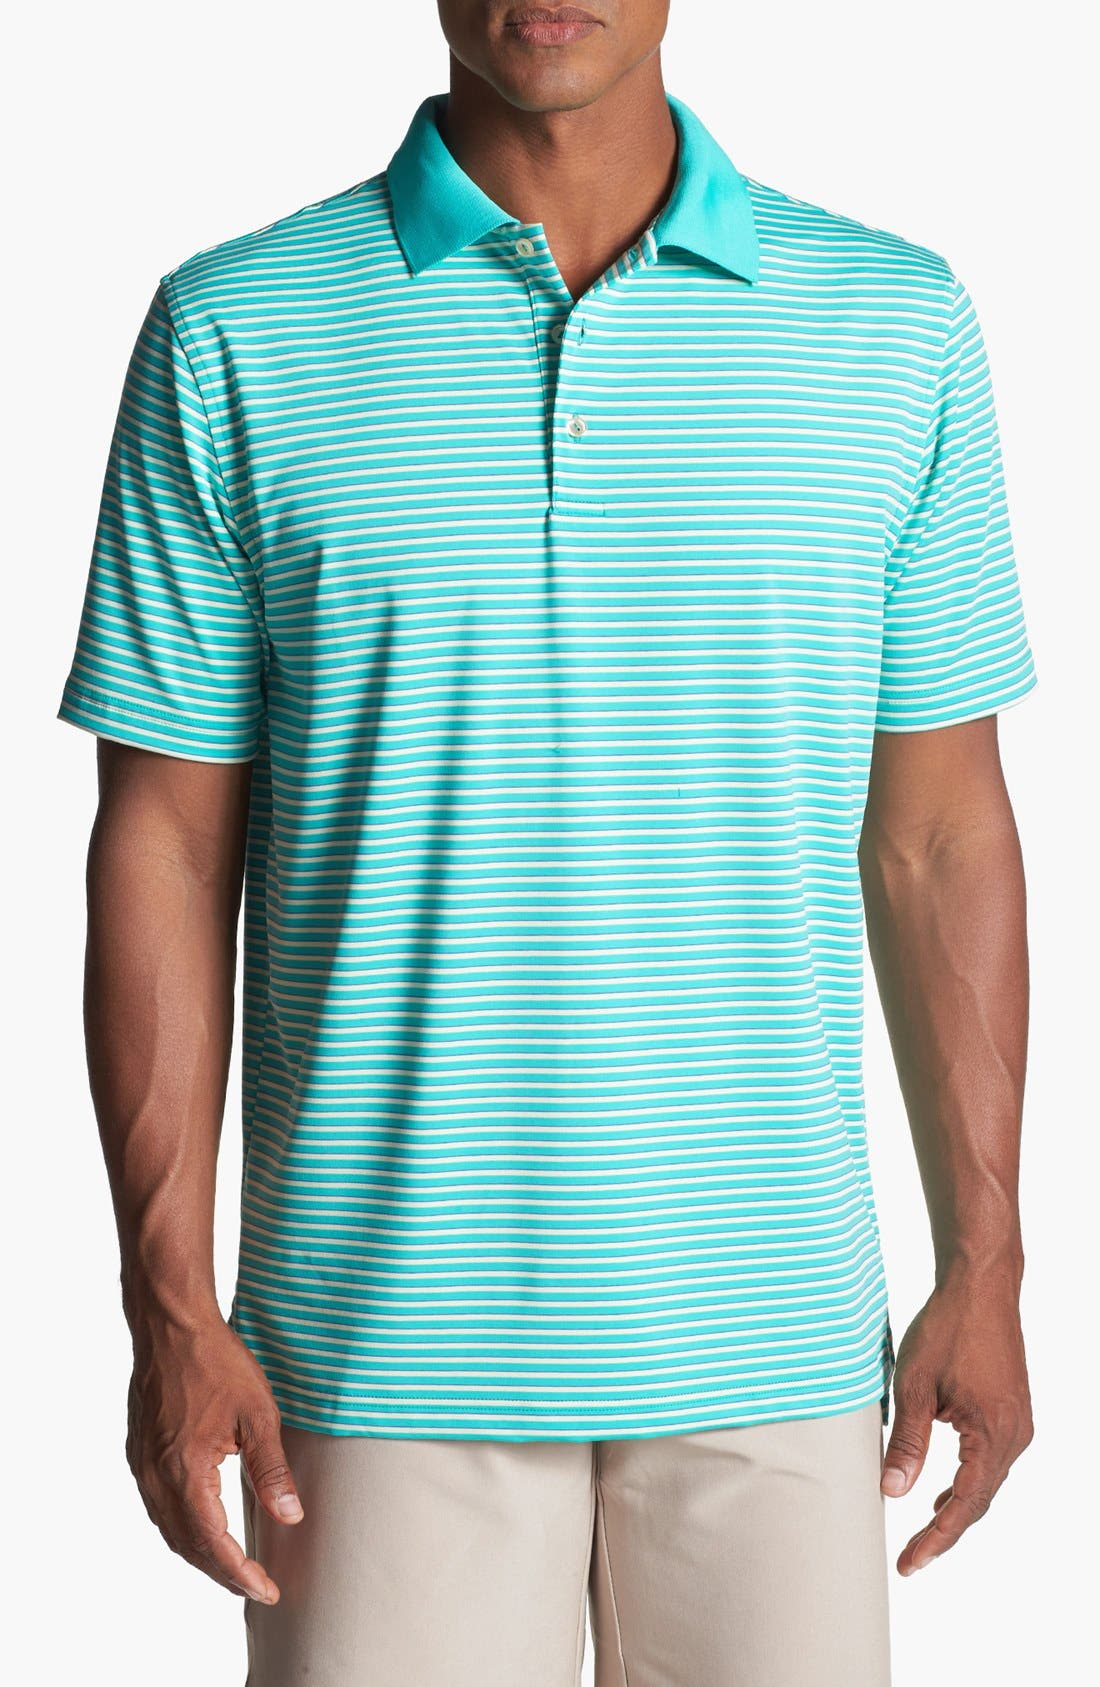 Main Image - Peter Millar Stripe Performance Polo